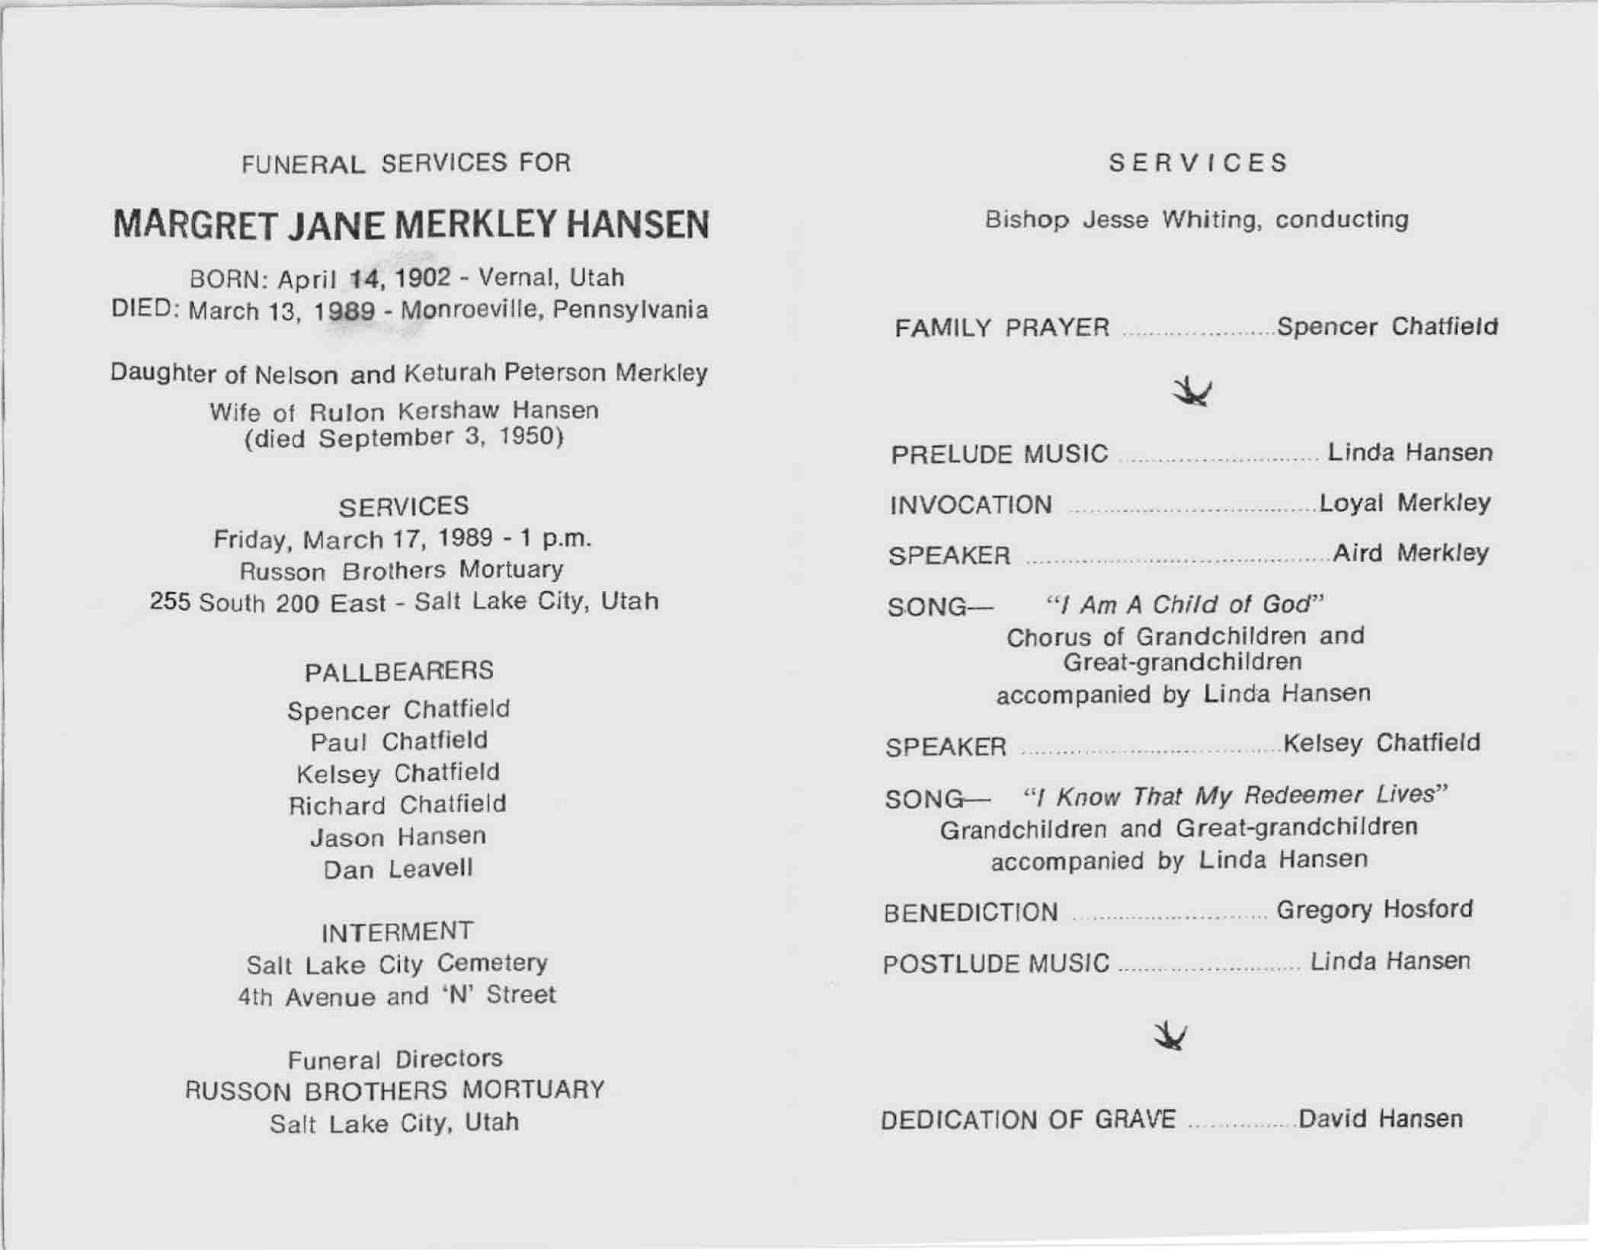 Asher And Birda Merkley: Death Info On Margret J. Merkley Hansen  Blank Program Template